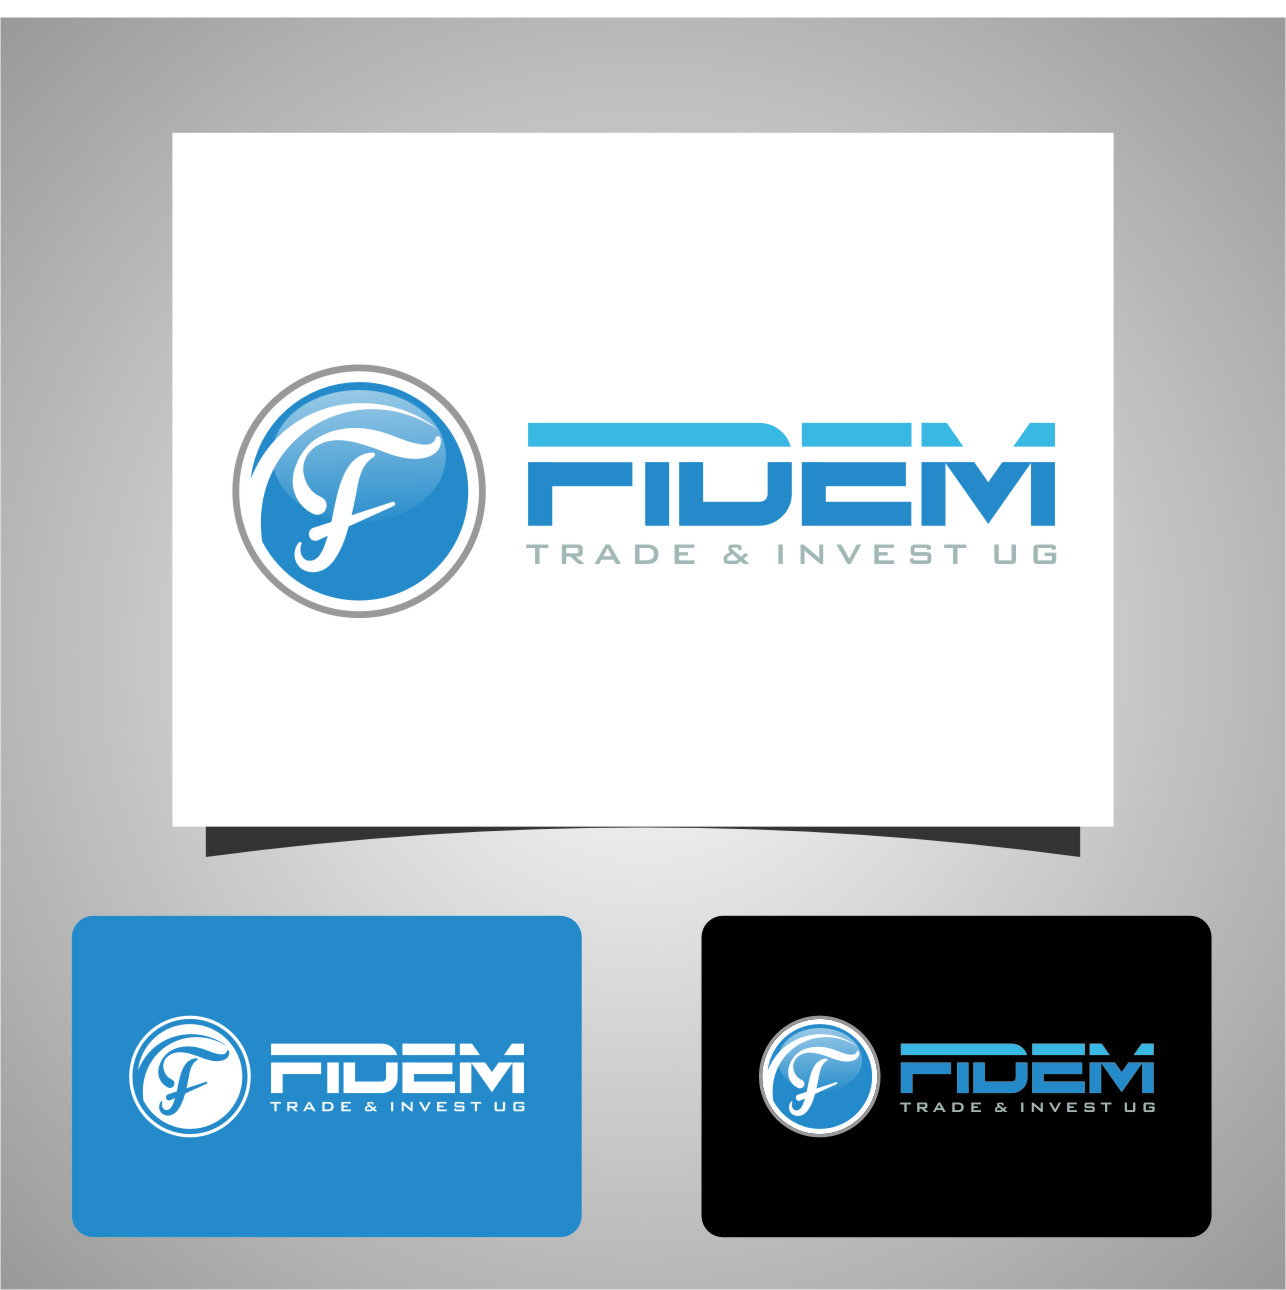 Logo Design by Ngepet_art - Entry No. 664 in the Logo Design Contest Professional Logo Design for FIDEM Trade & Invest UG.